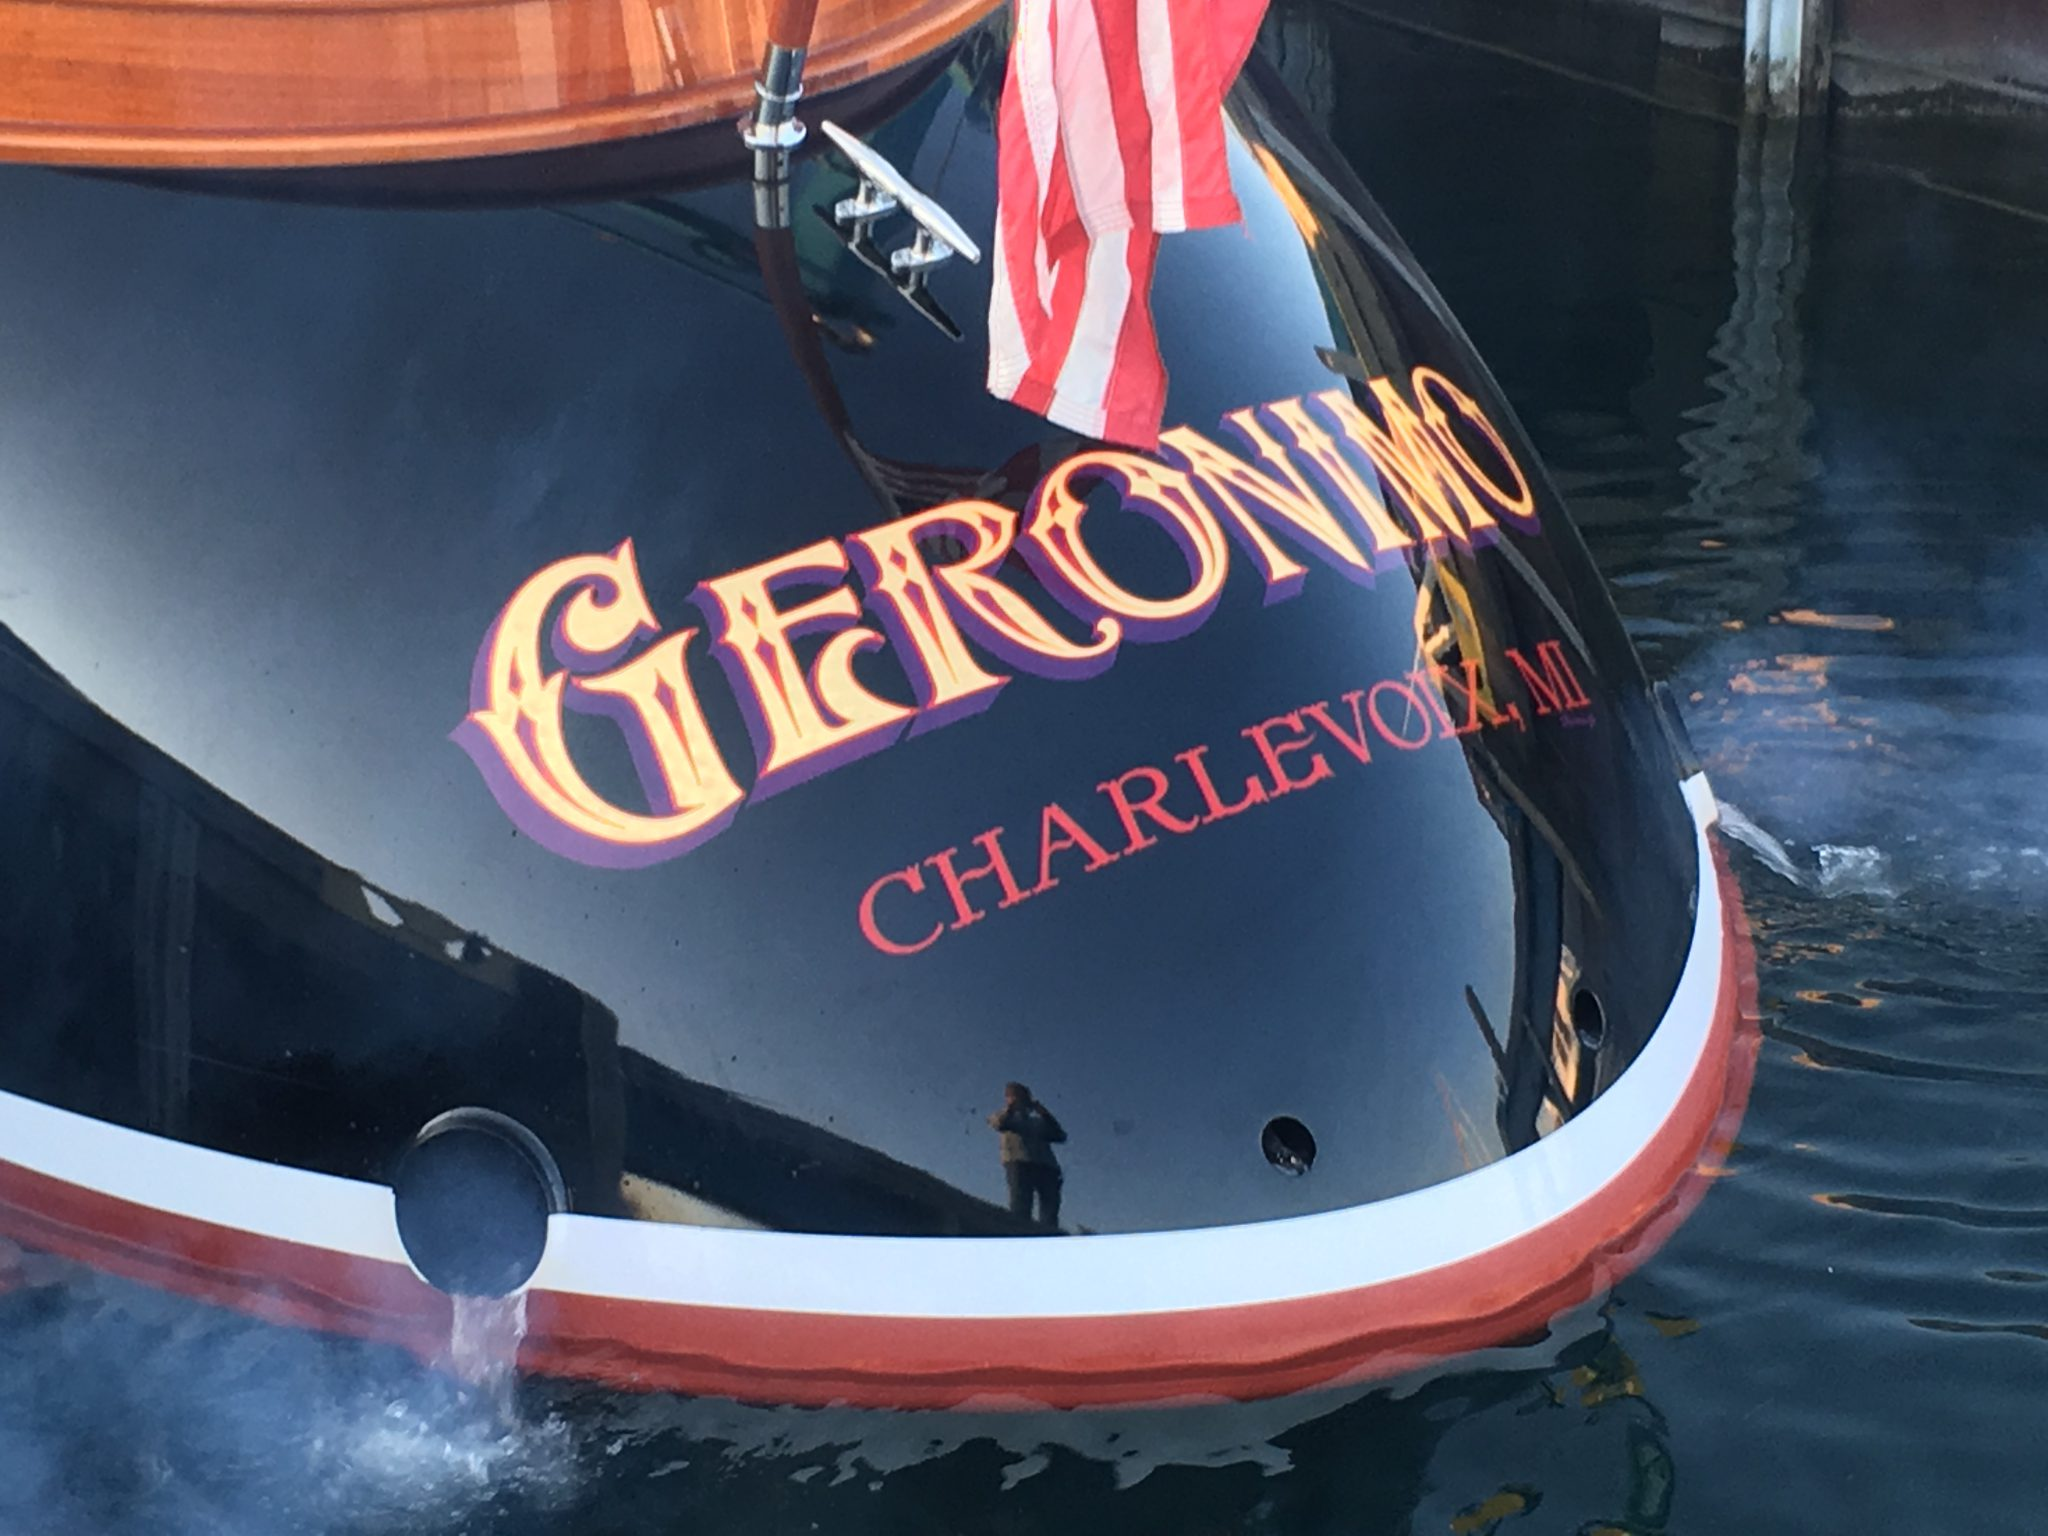 Amazing curved transom of Geronimo